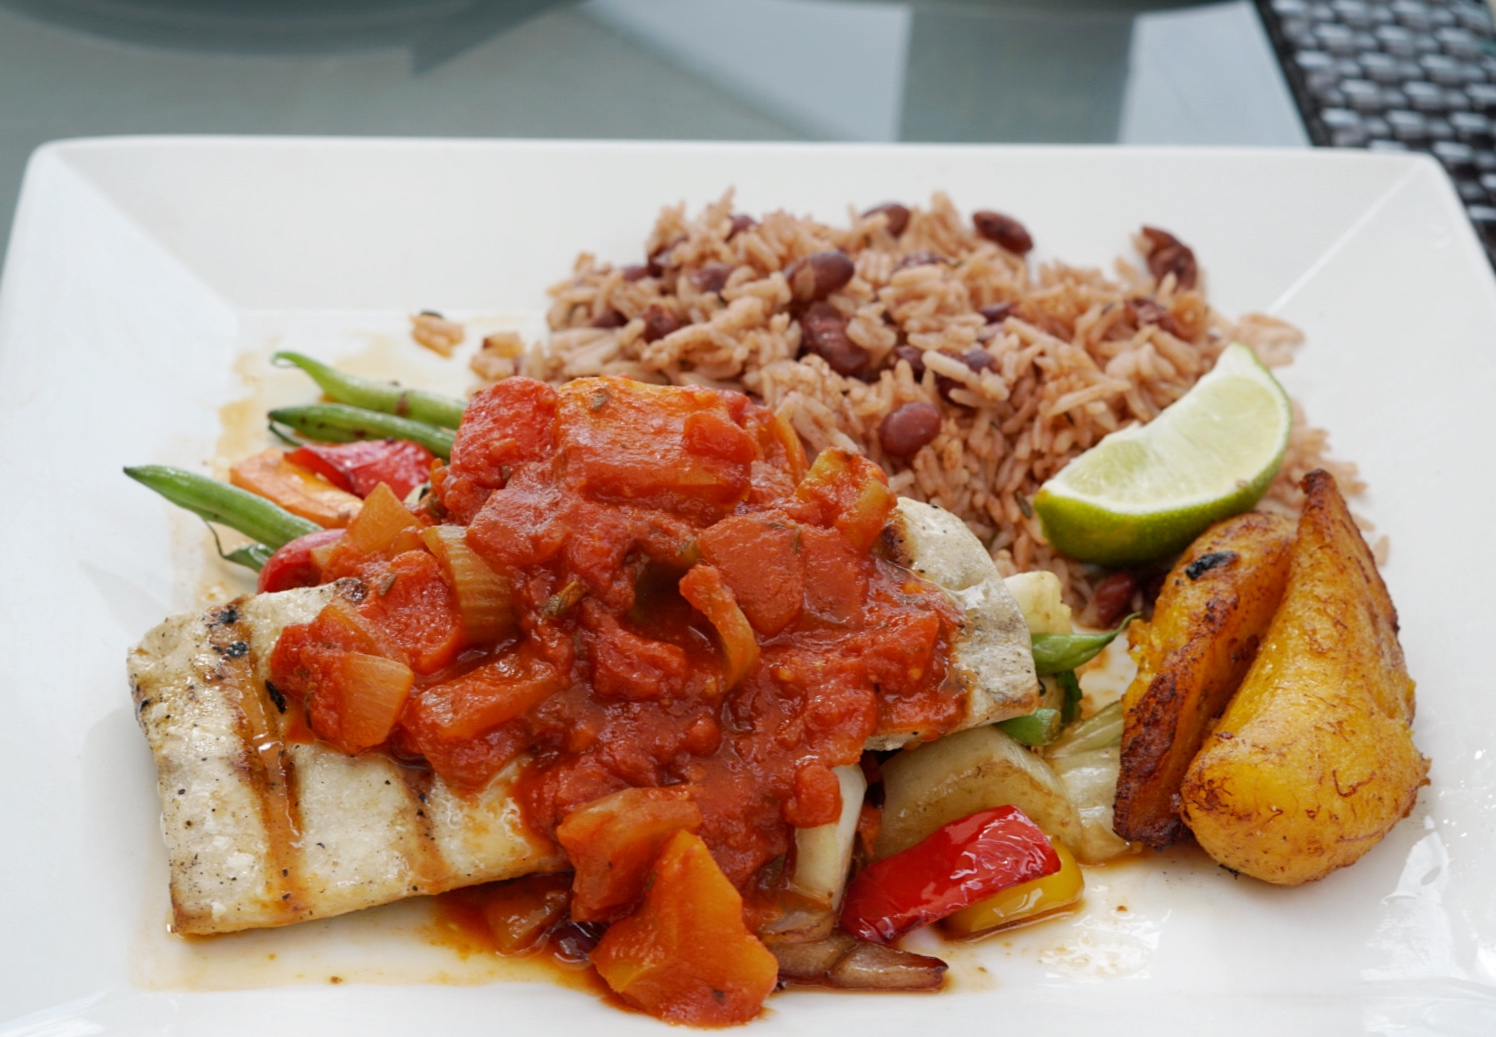 Cayman Style Mahi topped with a tomato-based sauce and served with green beans, sweet fried plantains and rice & beans